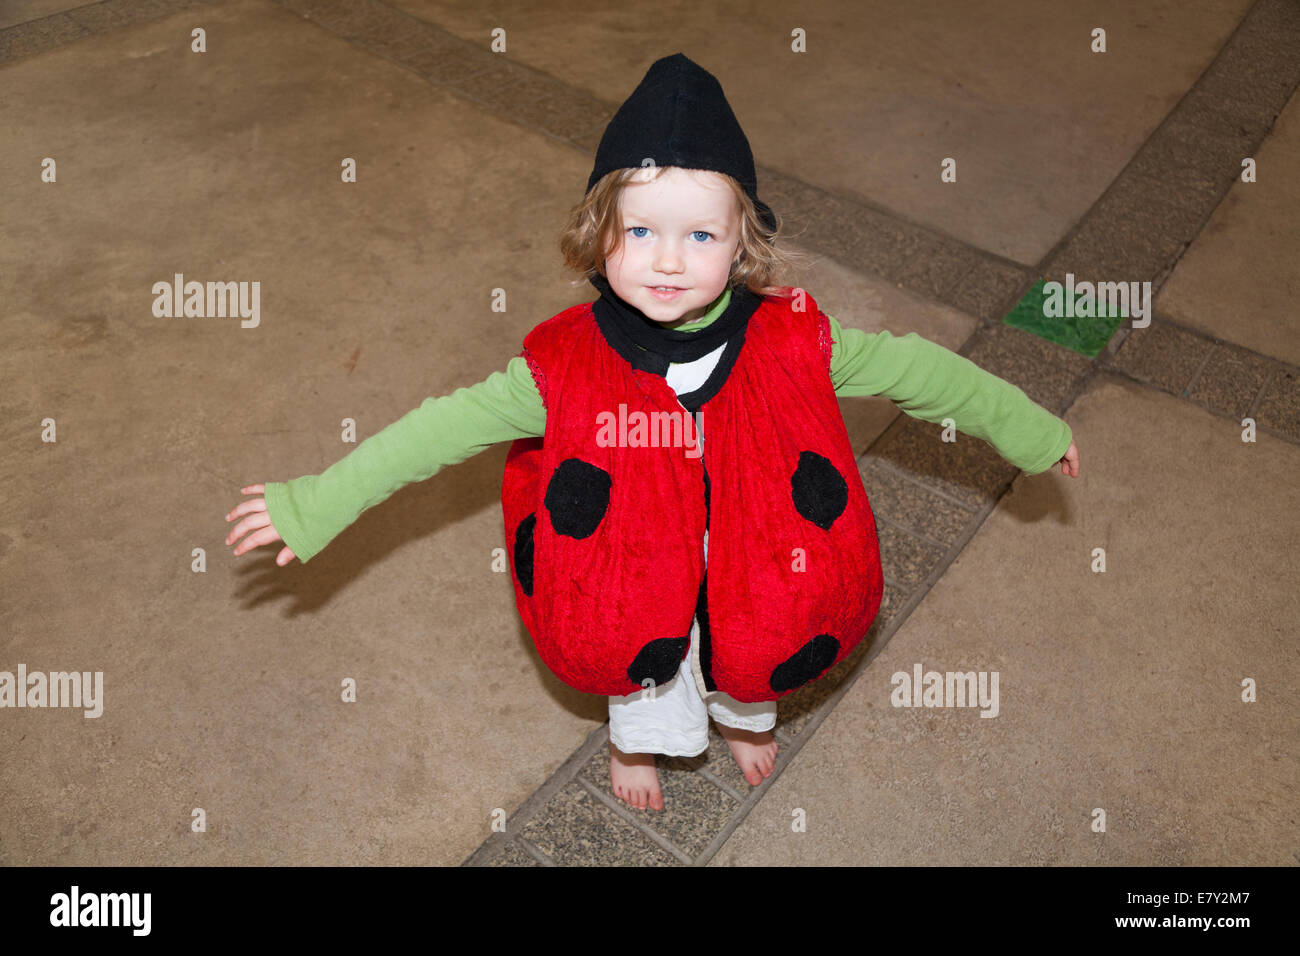 Two 2 year old girl child playing dressing up in fancy costume in the Eden Project 's The Core educational education - Stock Image